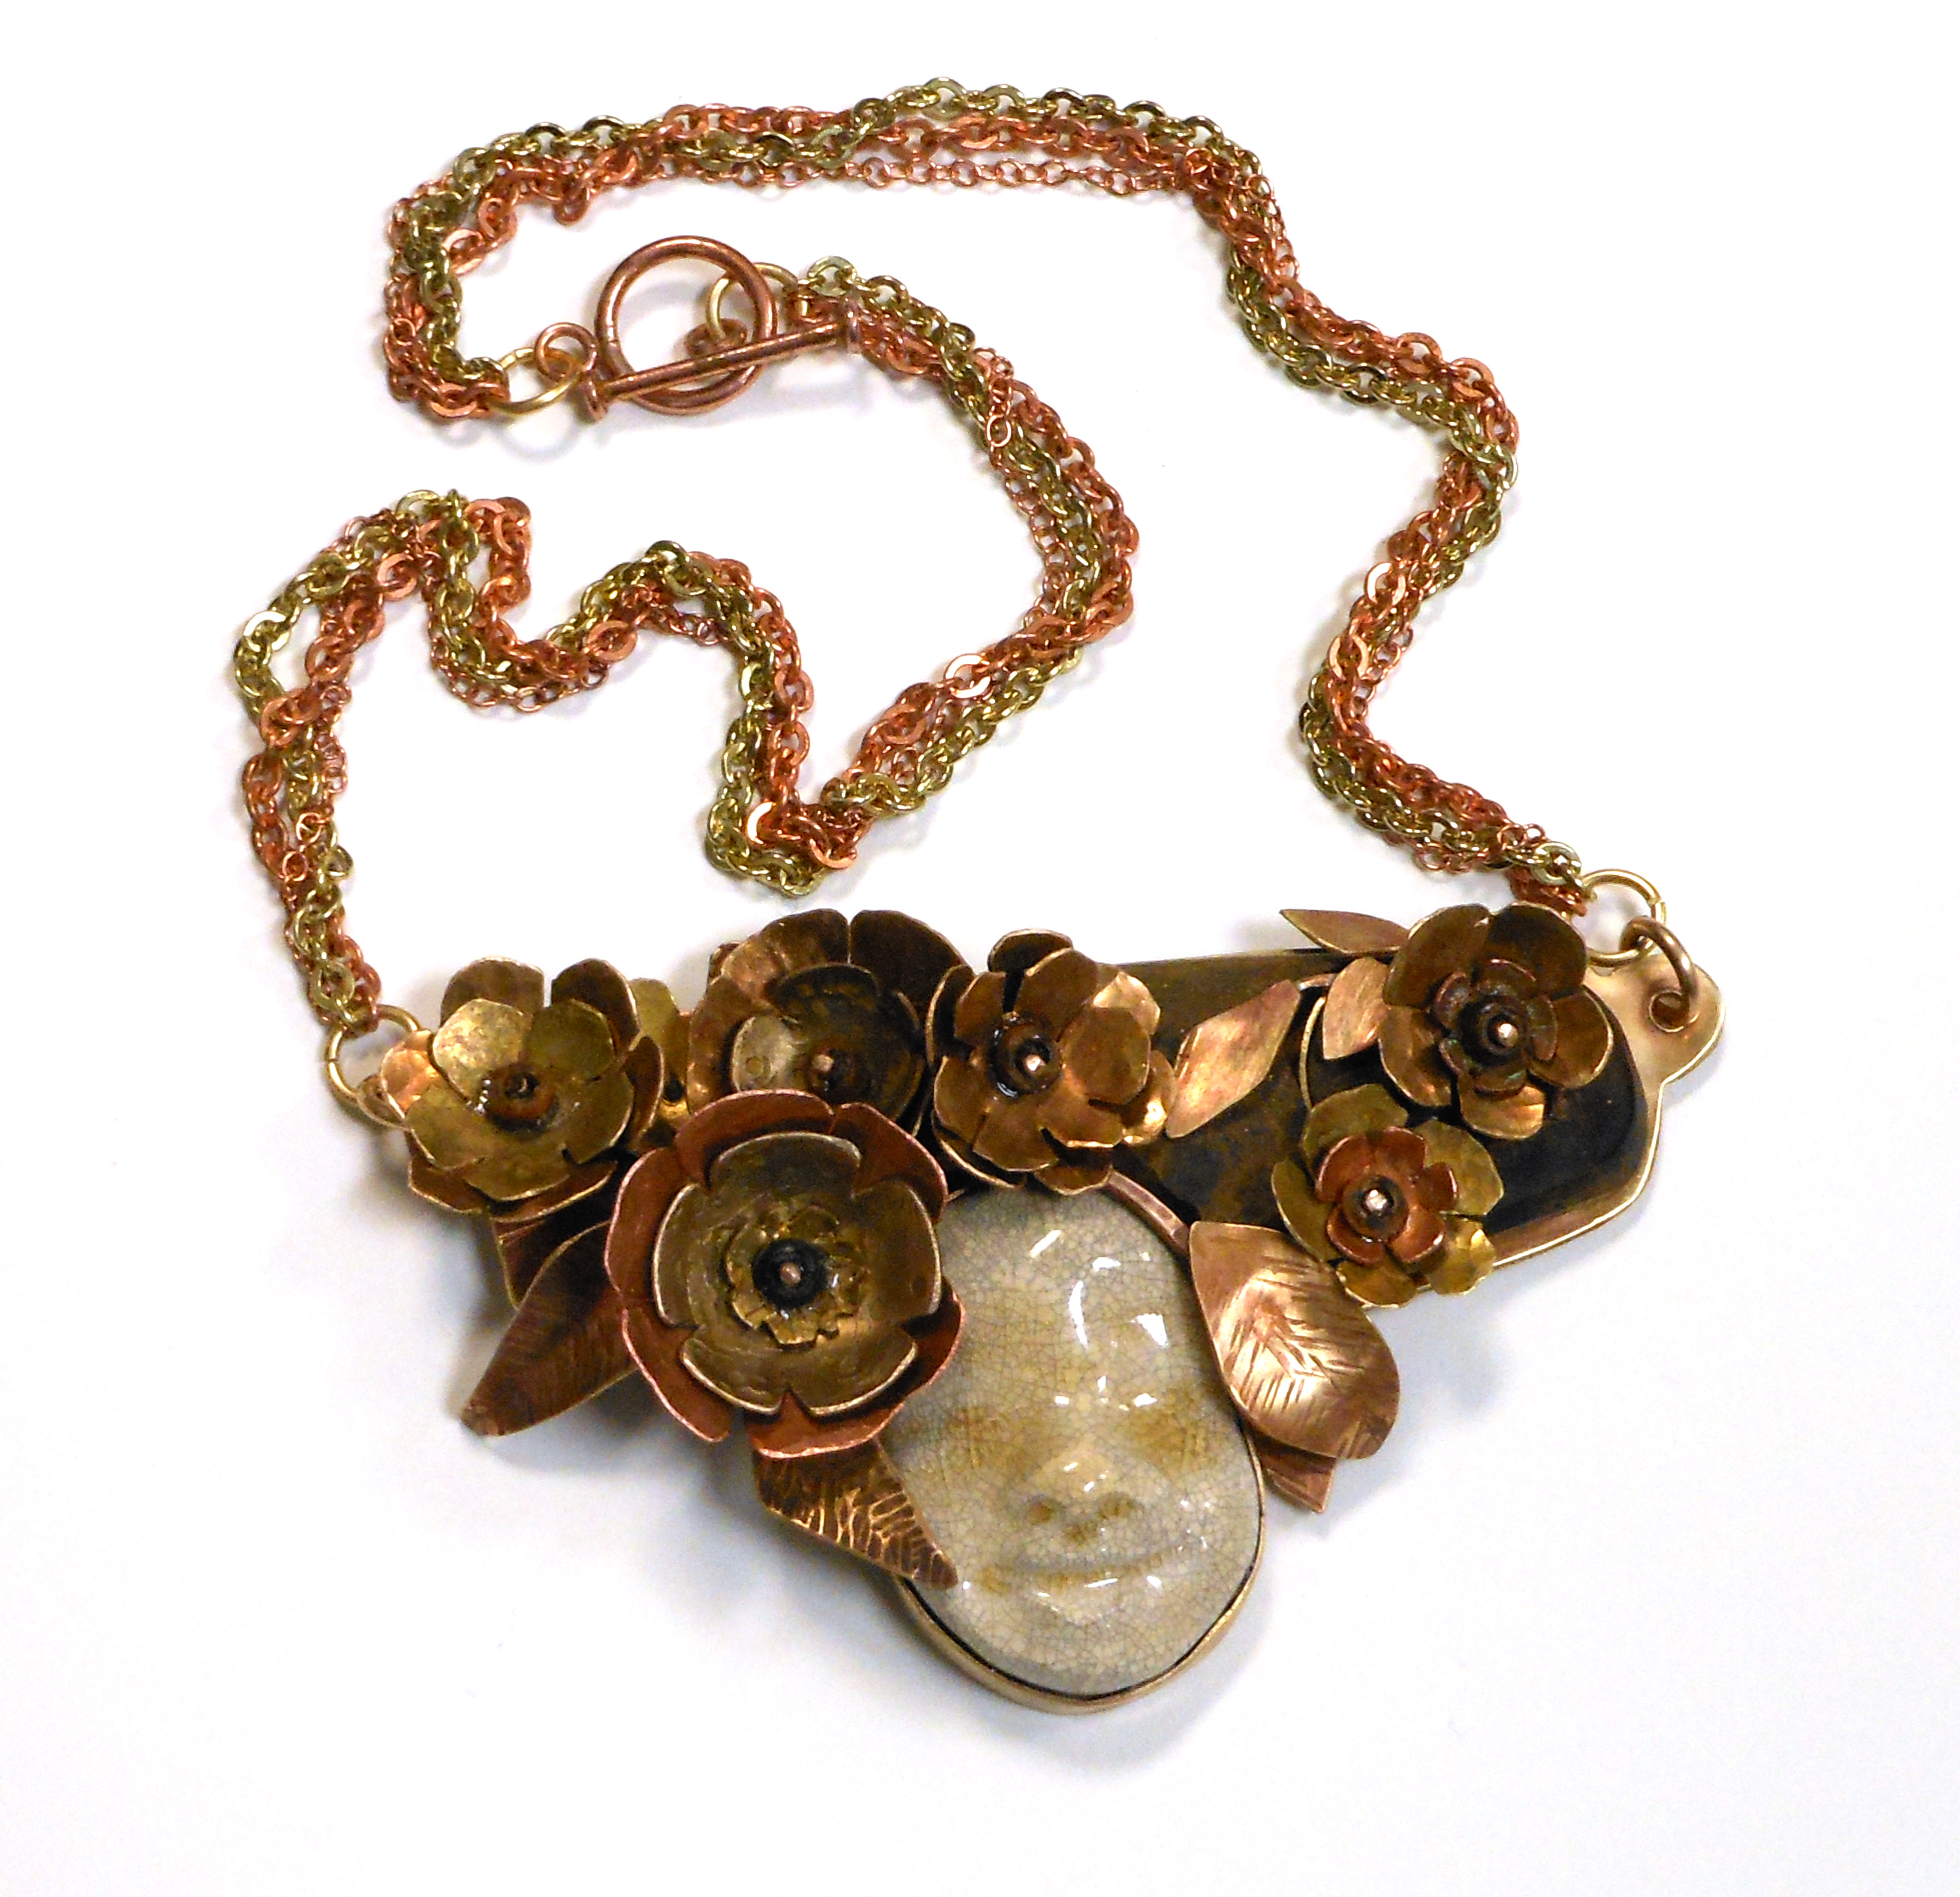 metal and ceramic necklace with fossilized wood